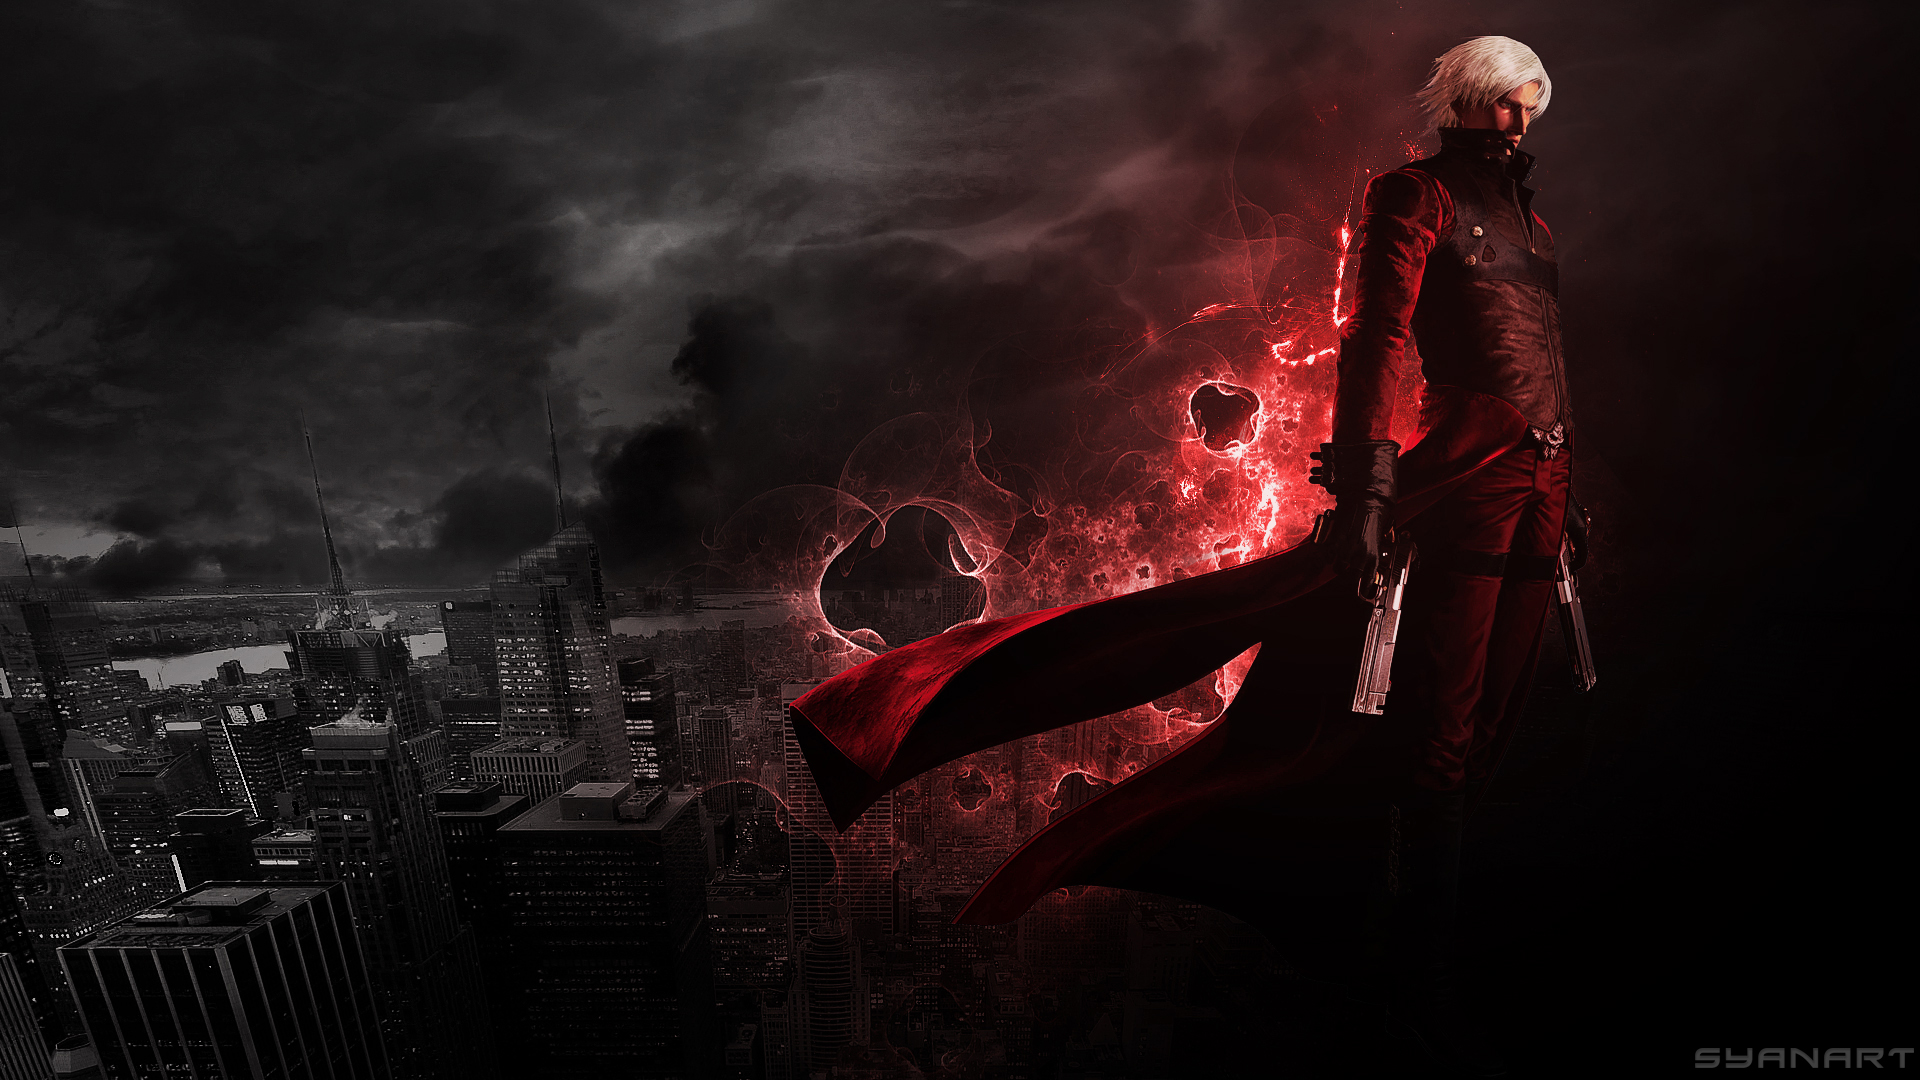 Devil-May-Cry-2-Dante-devil-may-cry-2-39186920-1920-1080.jpg